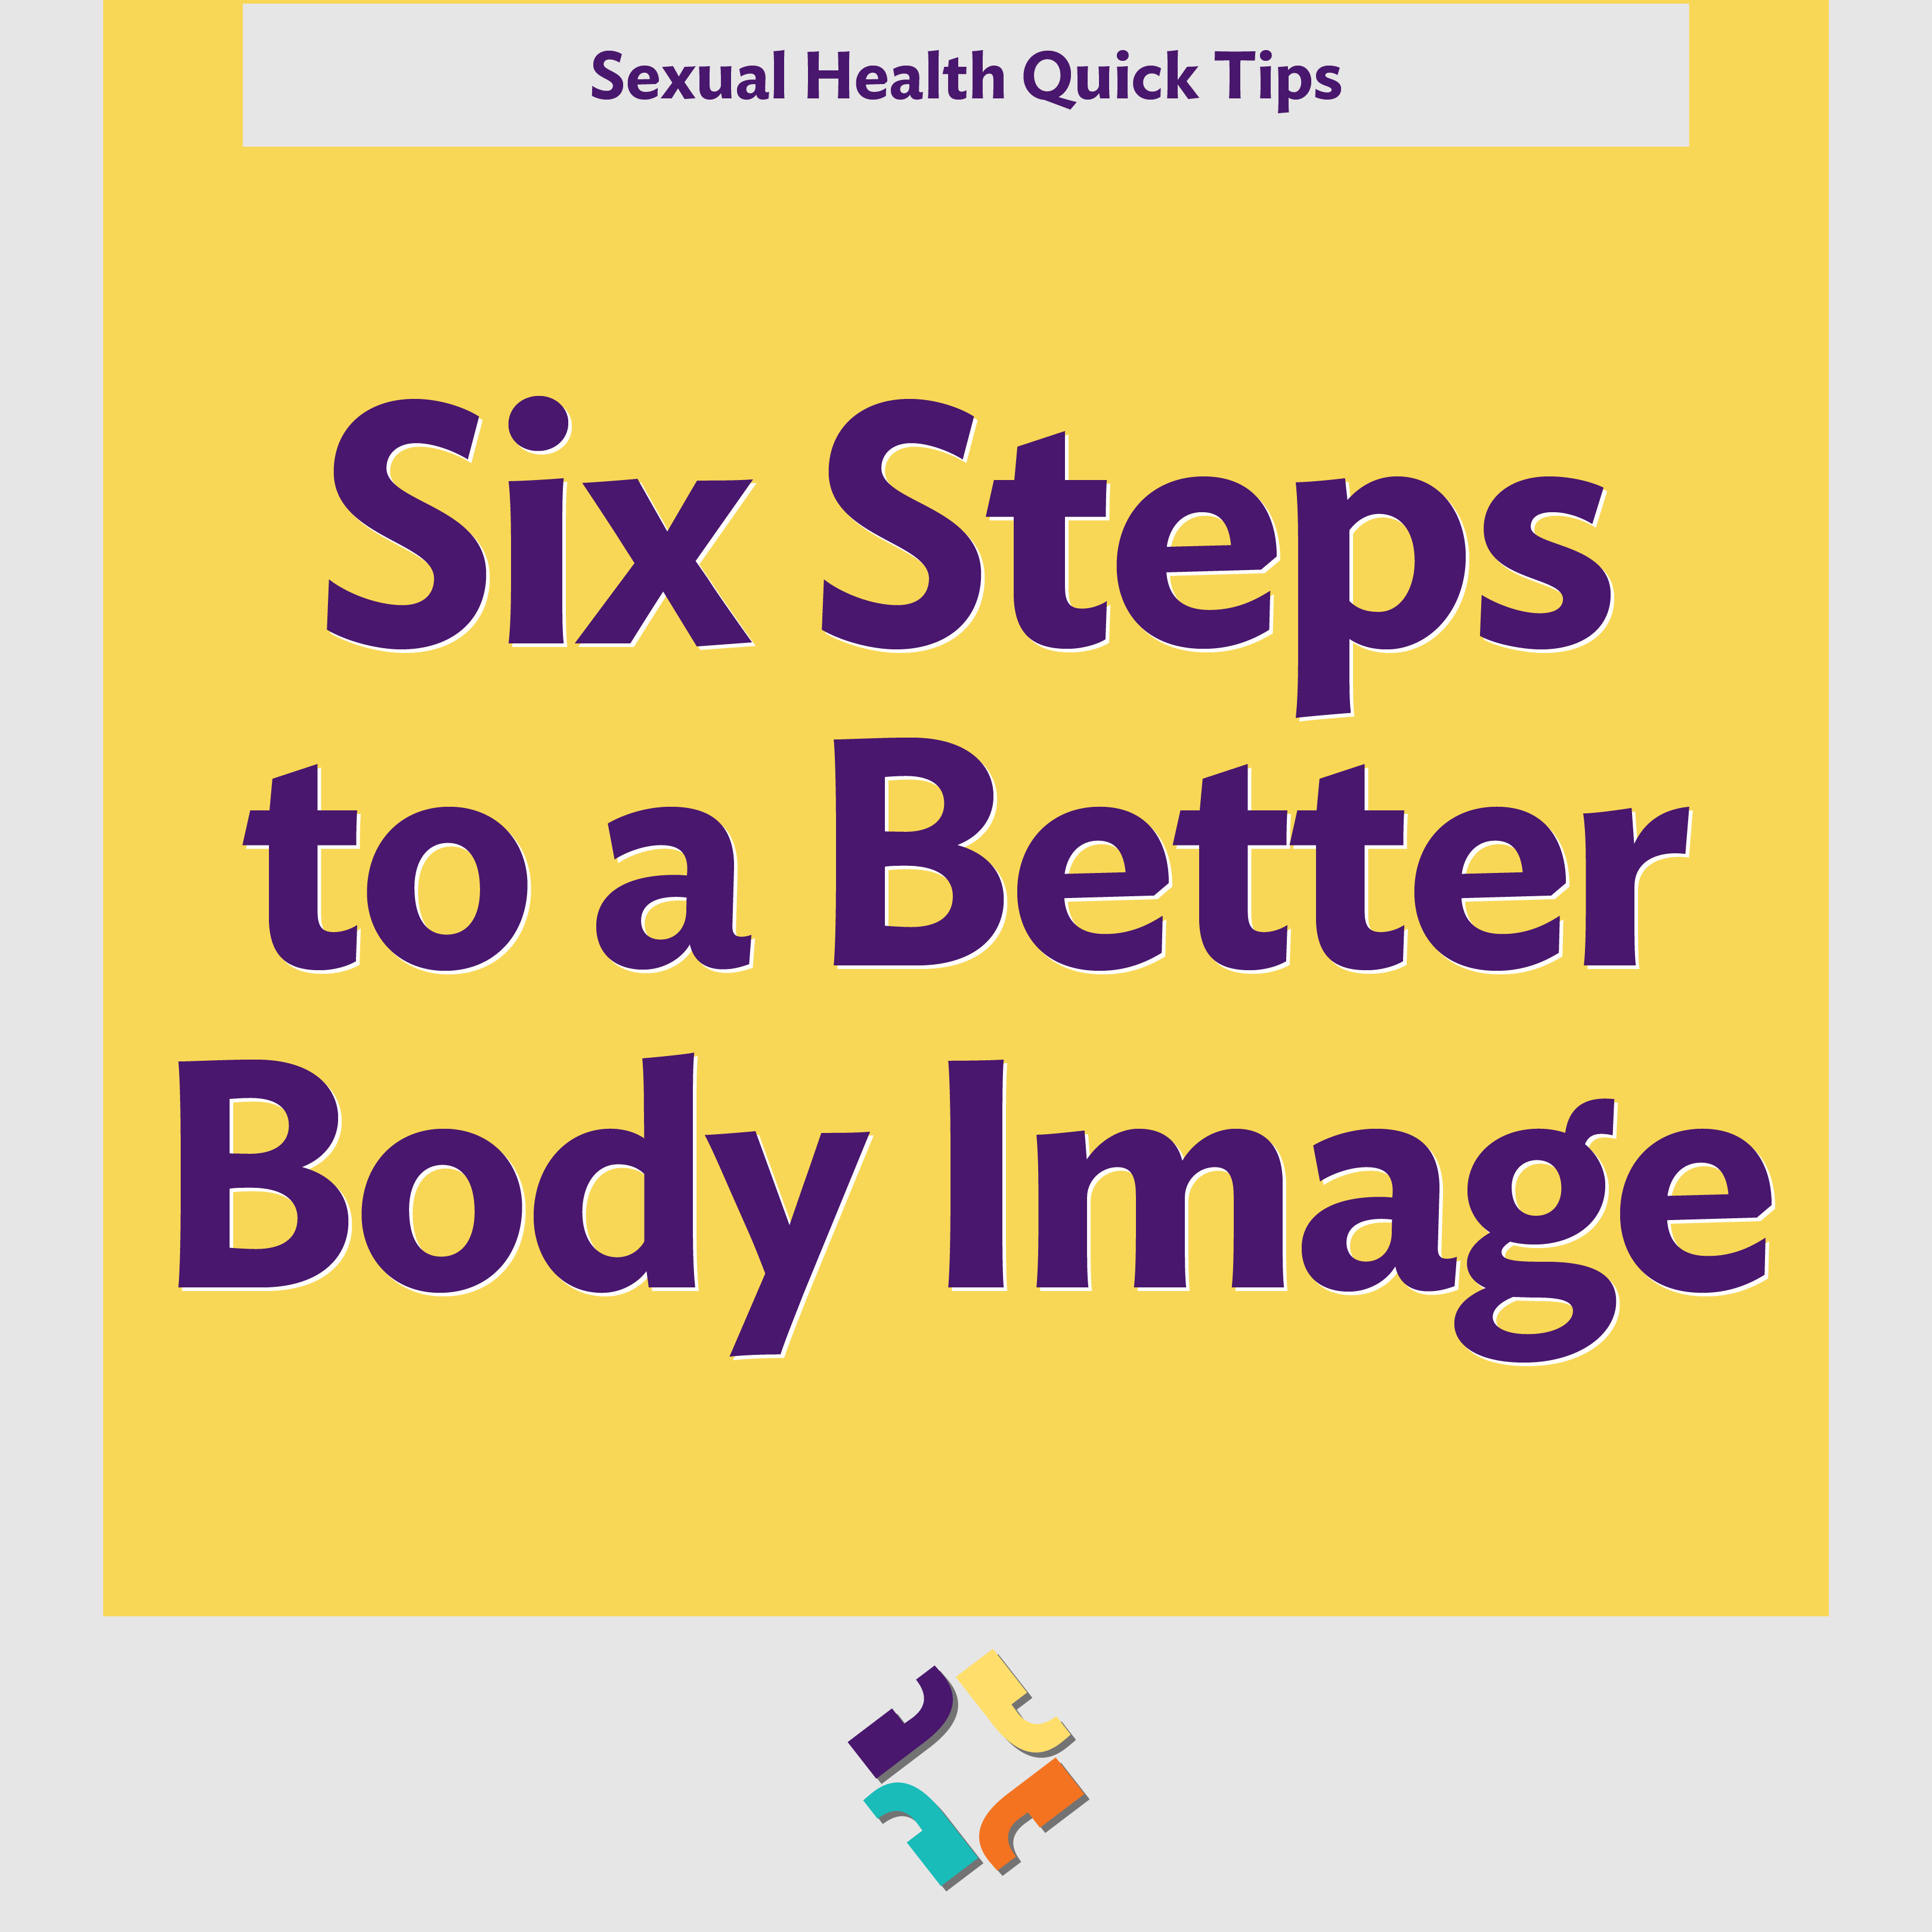 Six Steps to a Better Body Image